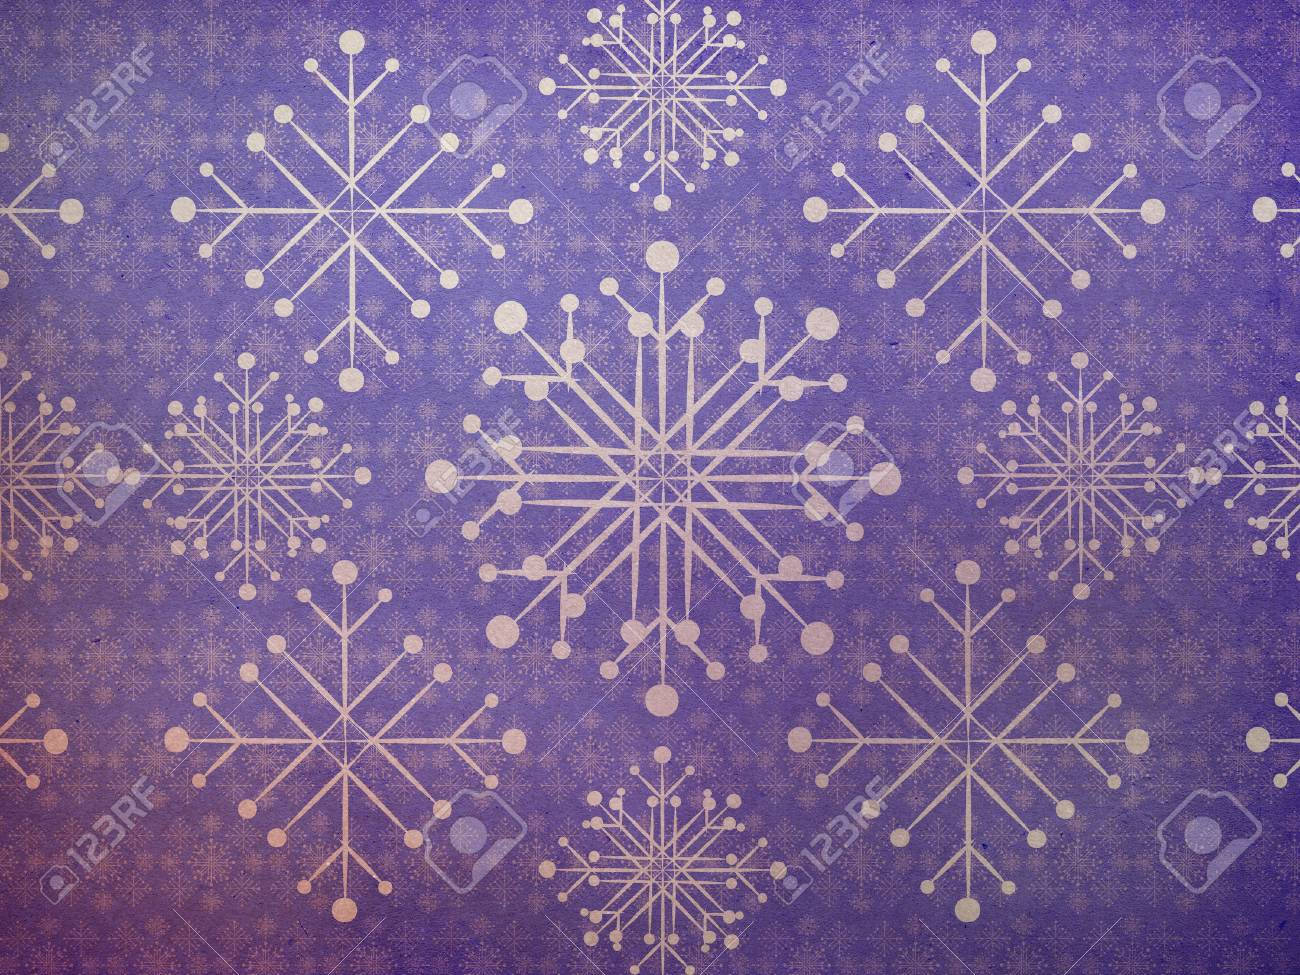 illustration of abstract vintage snowflake texture violet background